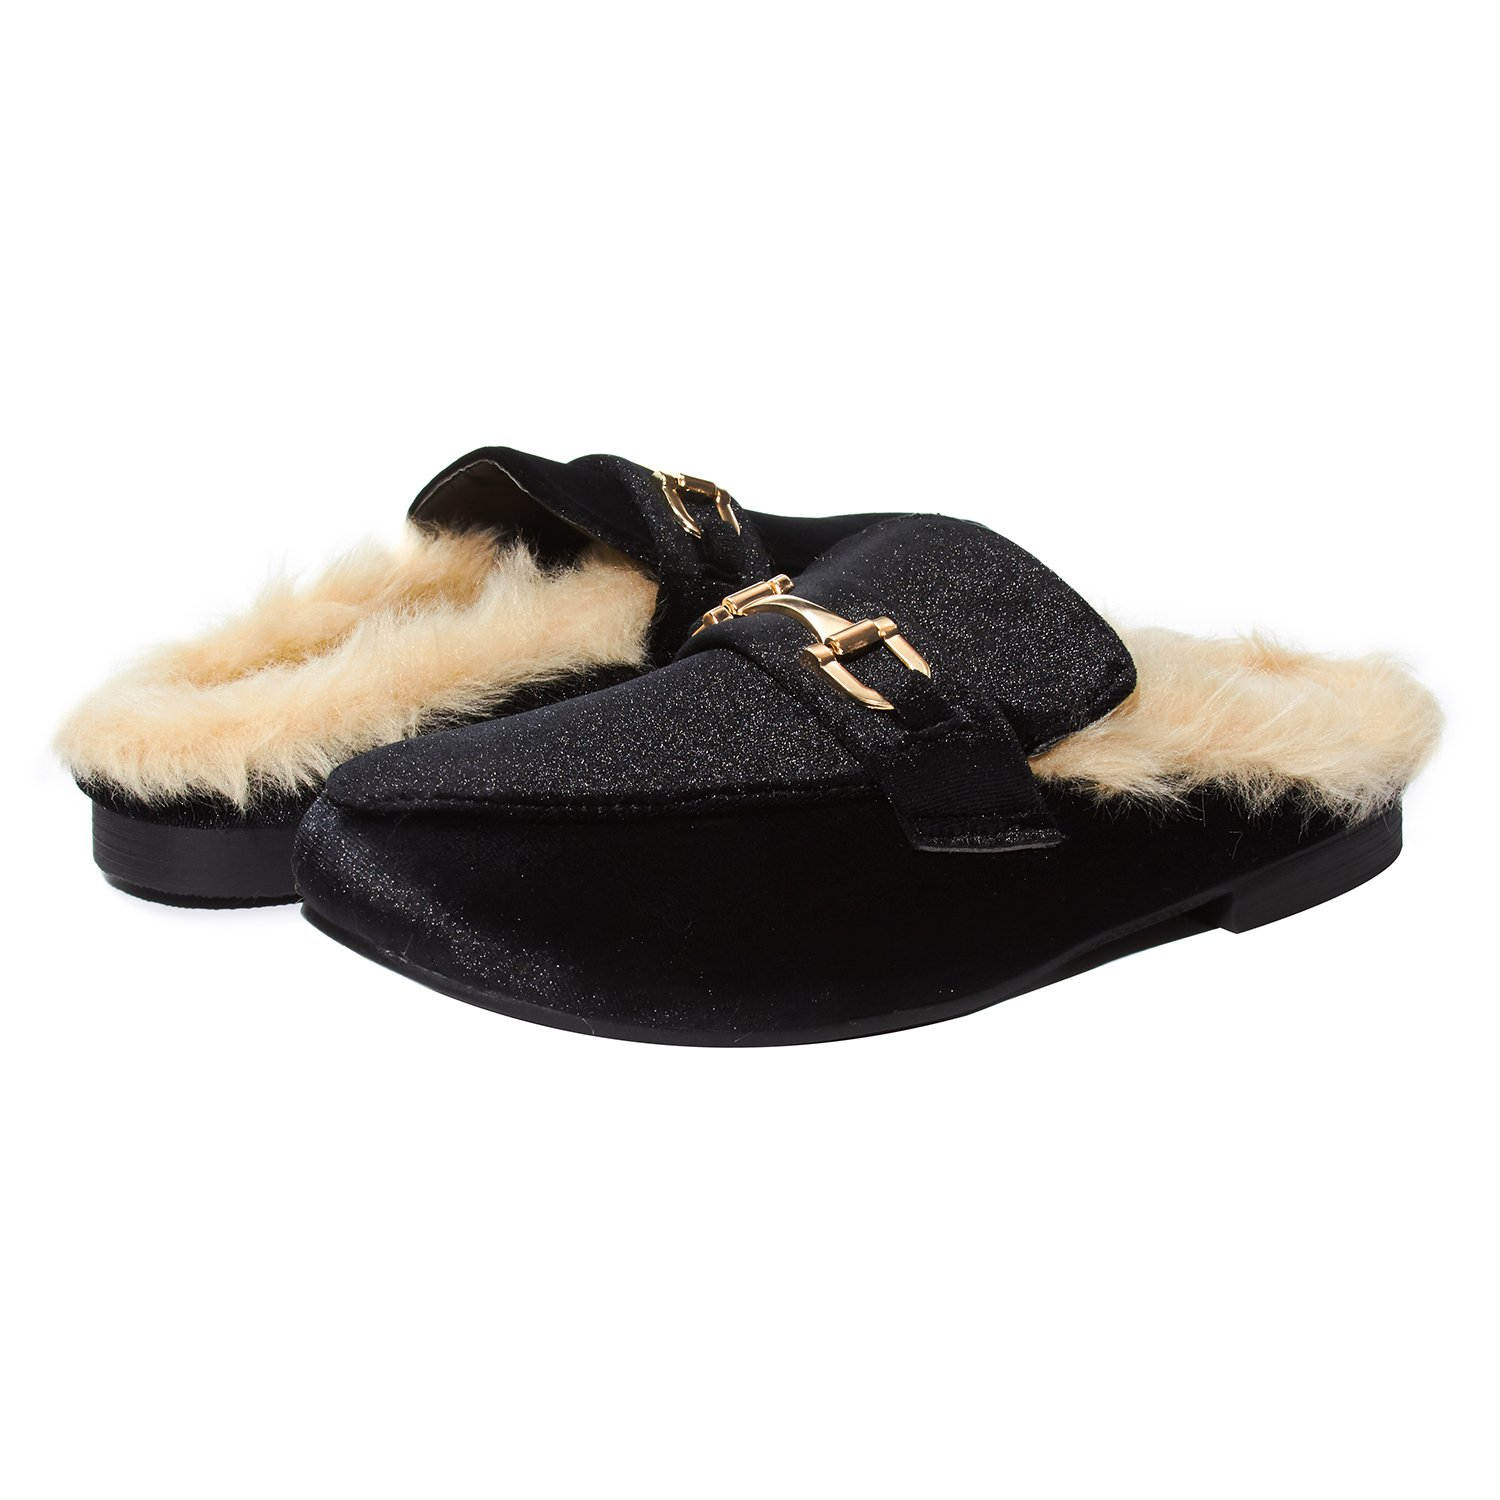 f8adde84c Galleon - Sara Z Womens Ladies Backless Loafer Mule Shoes With Faux Fur  Linings And Buckle Black Velvet Size 5/6